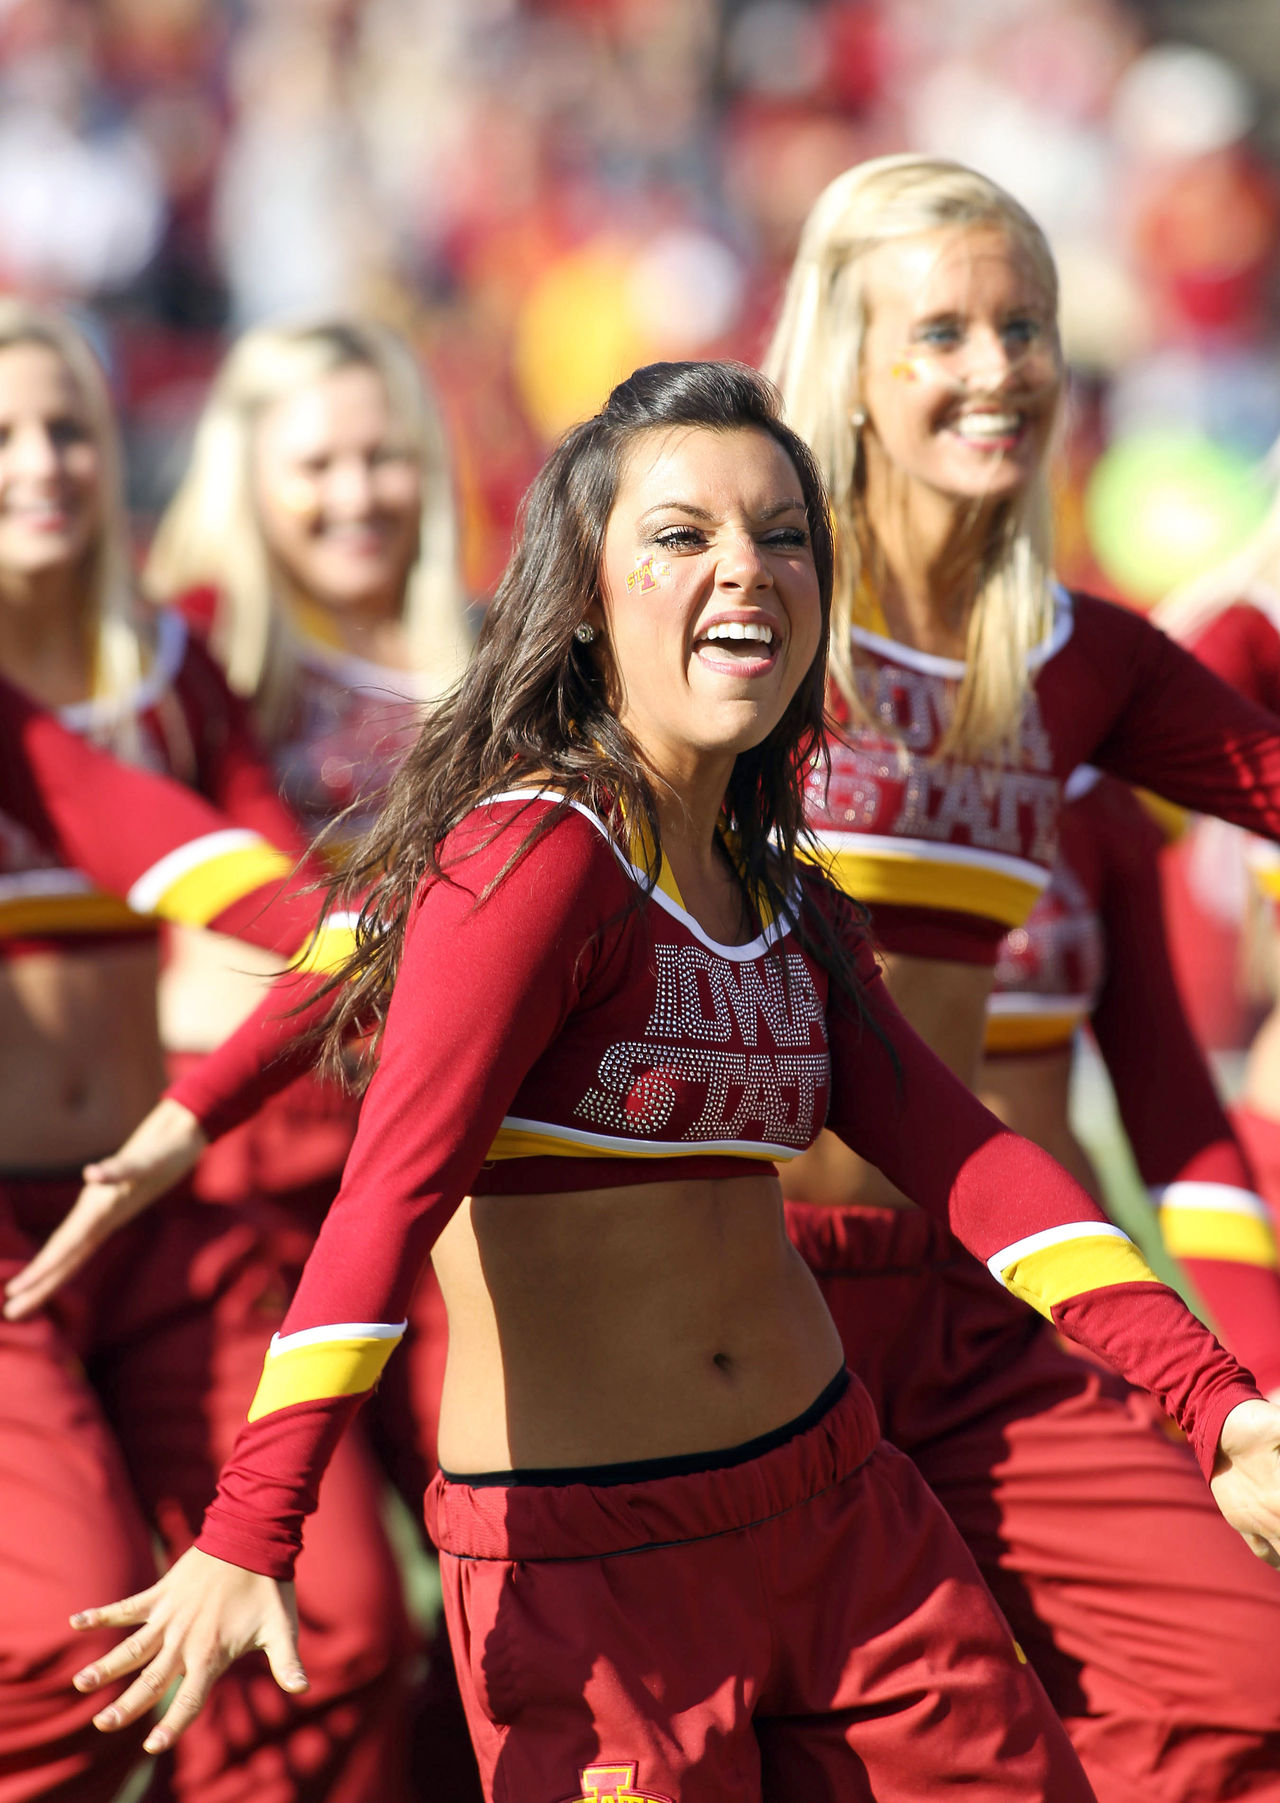 The OFFICIAL Opponent's Hotties Thread- Iowa State (Get ...